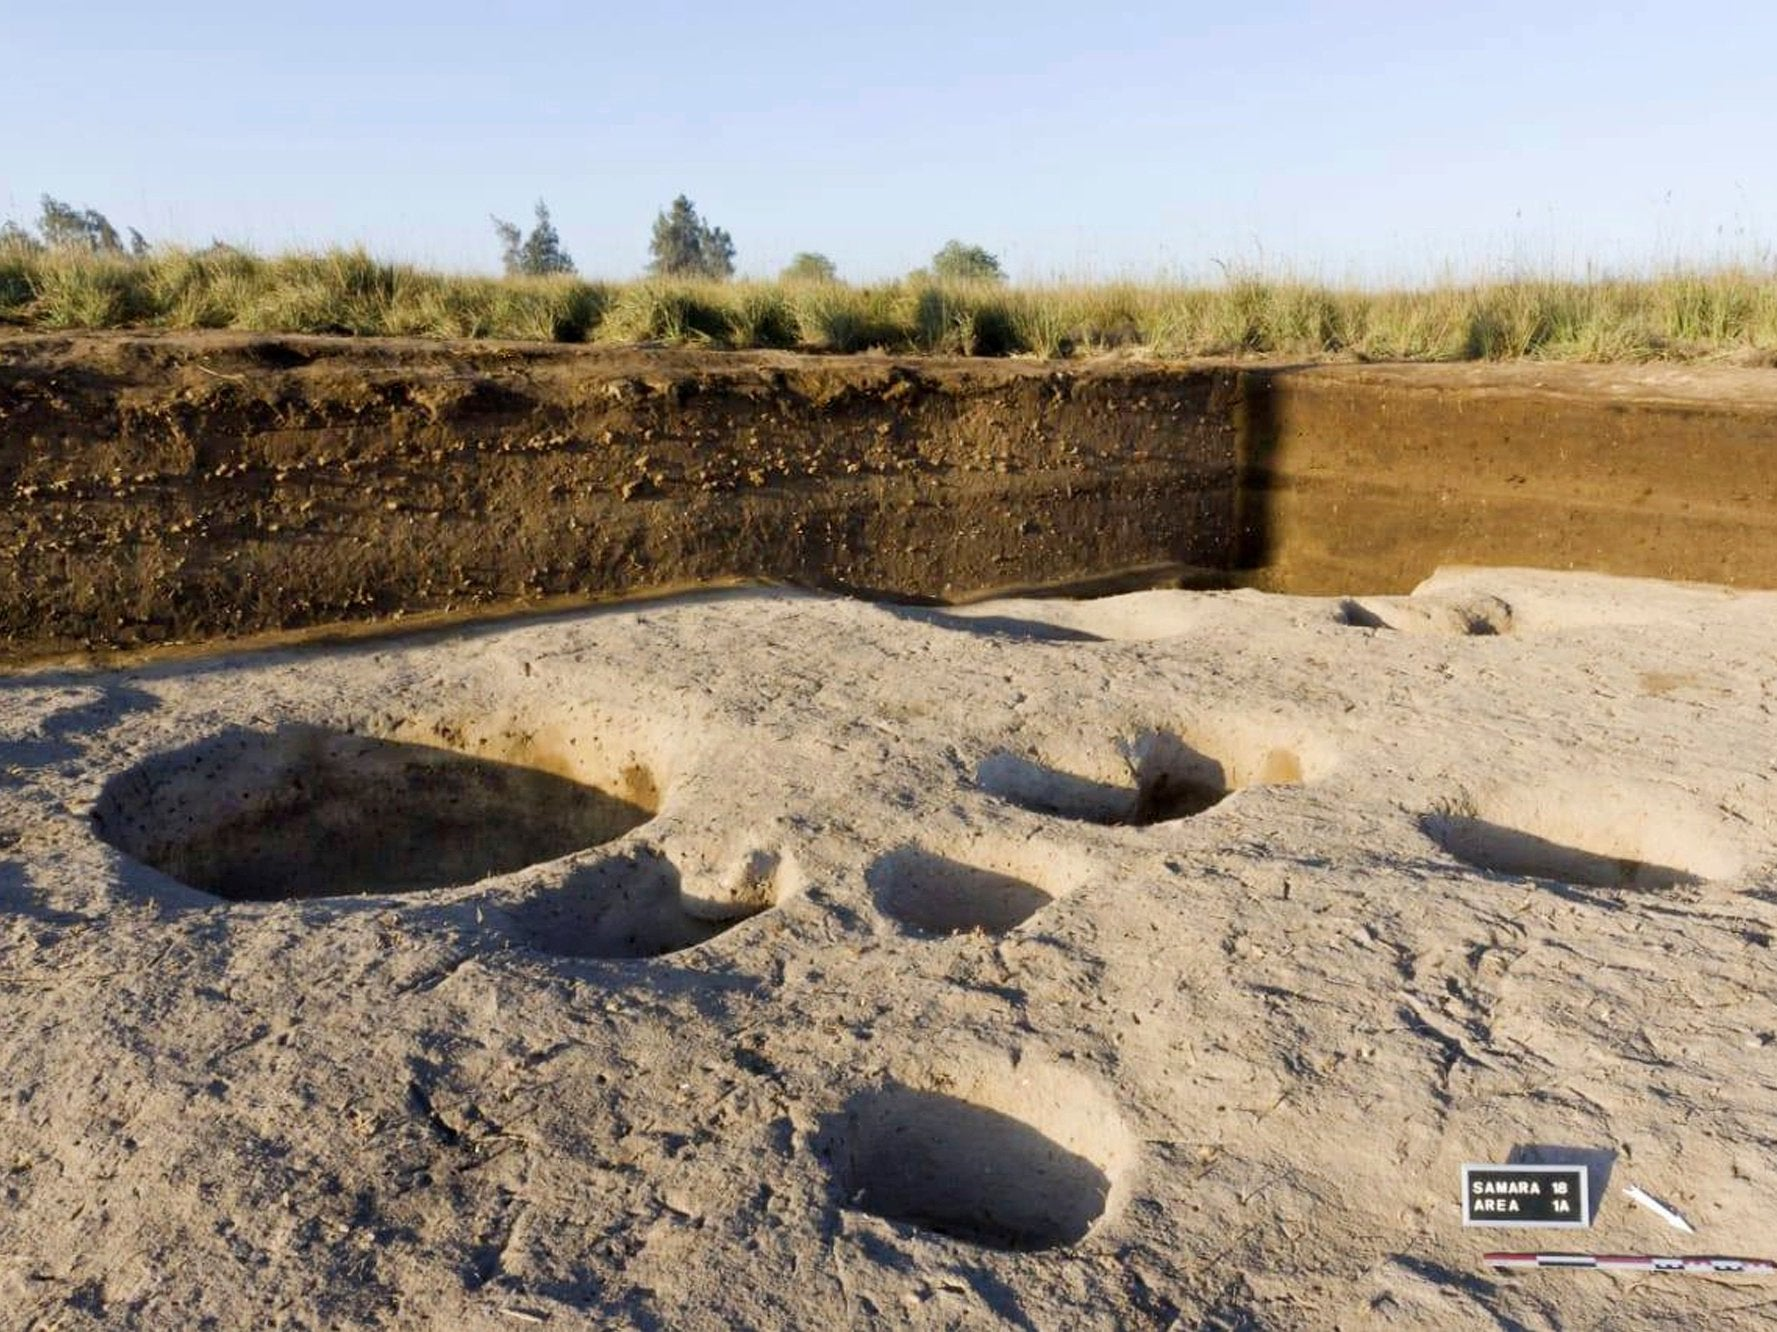 Ancient village that predates pharaohs discovered in Egypt